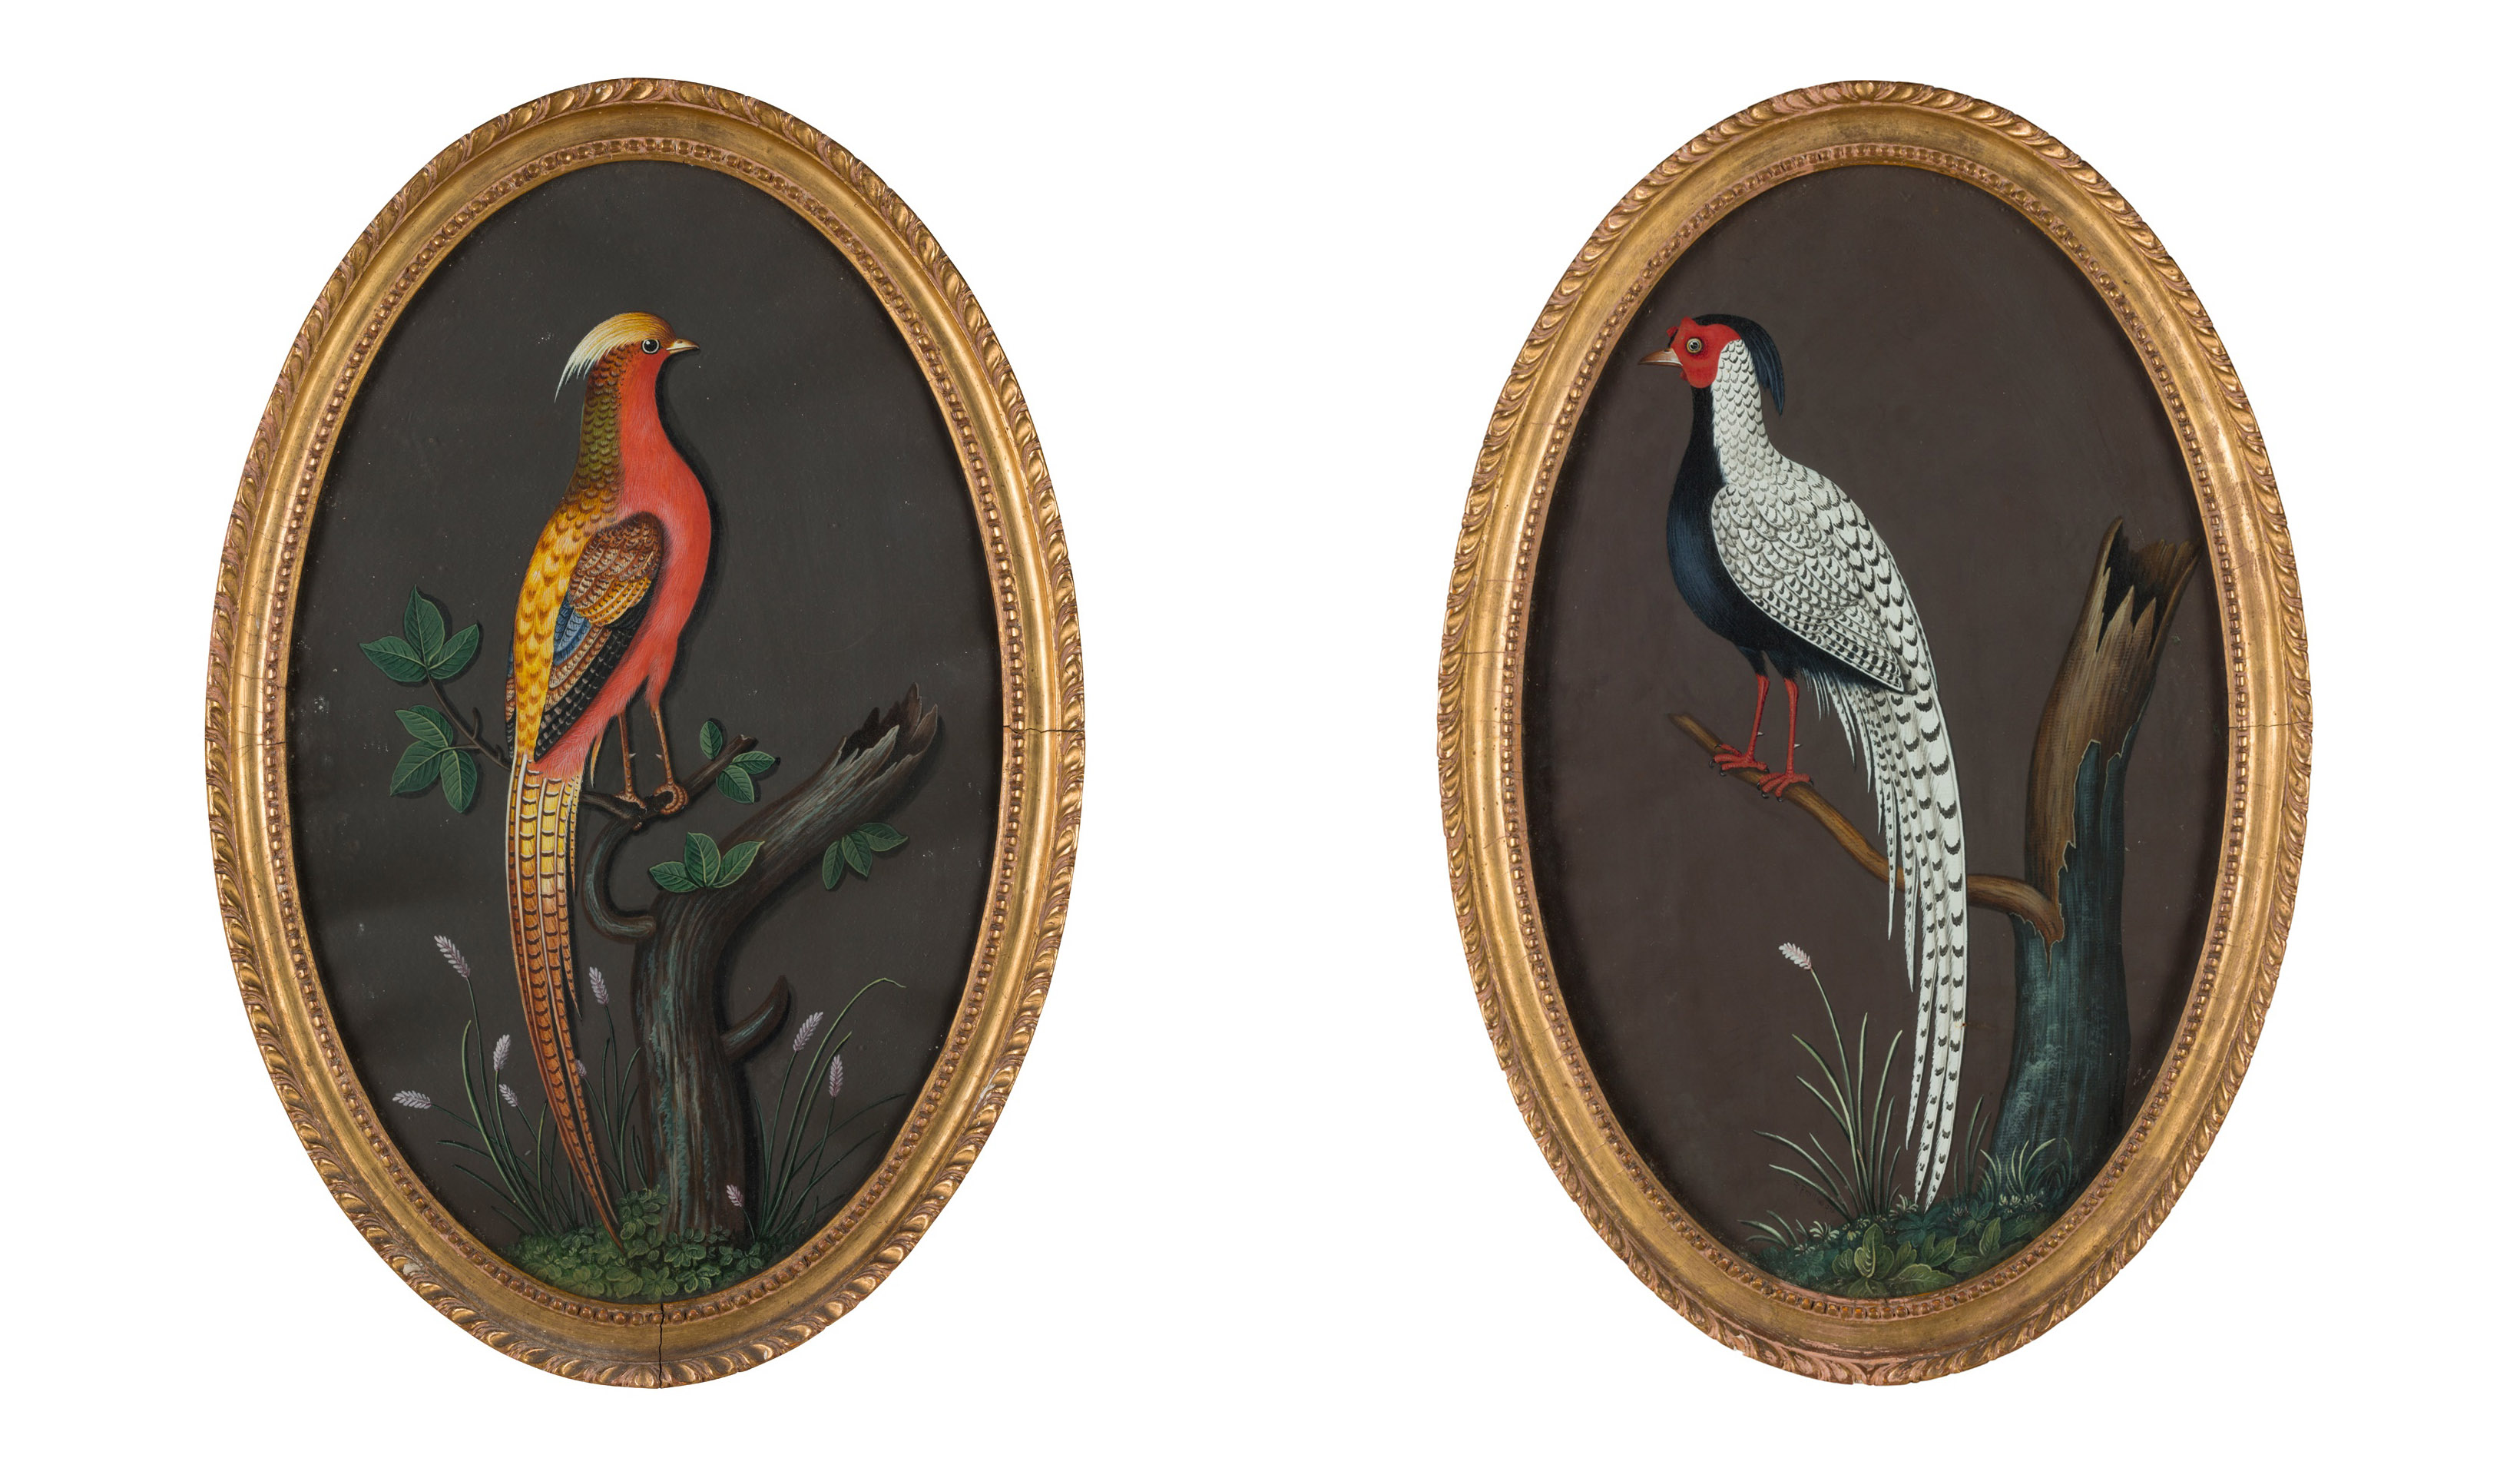 LOT 89 | PETER PAILLOU | CHINESE PHEASANT